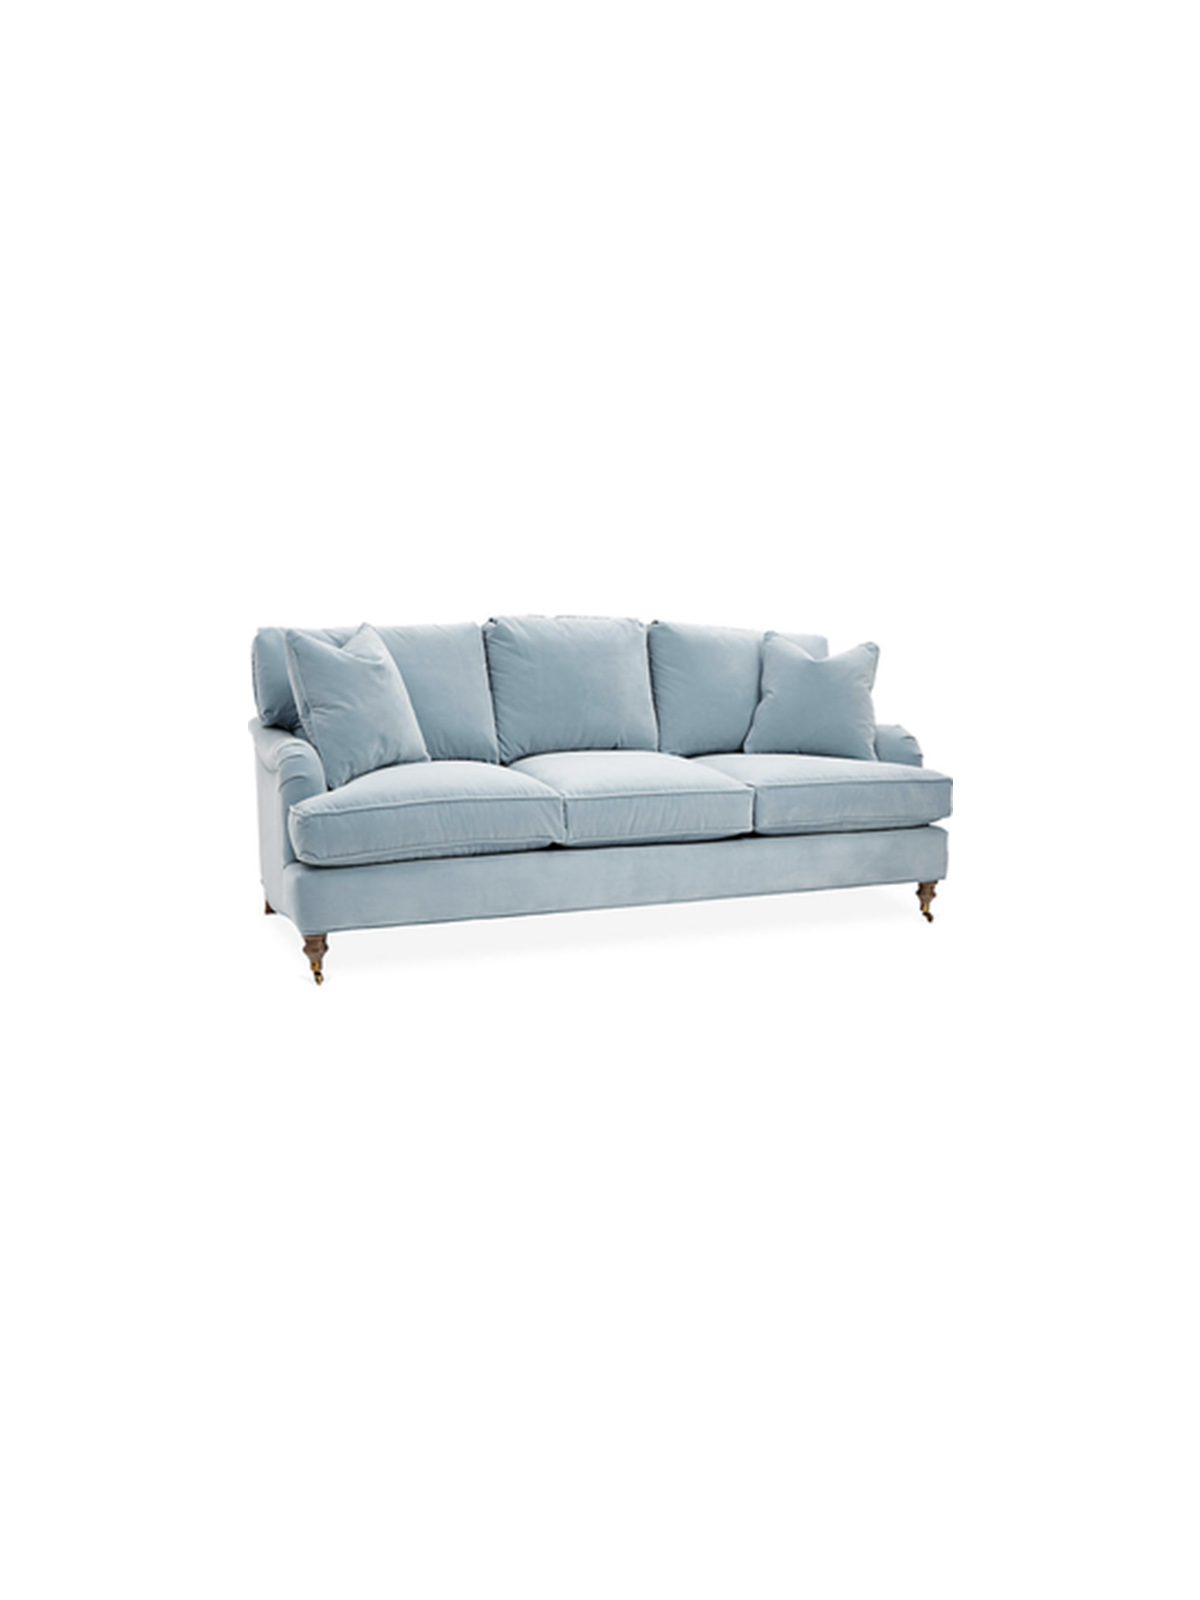 Stain Resistant Sofa in light blue